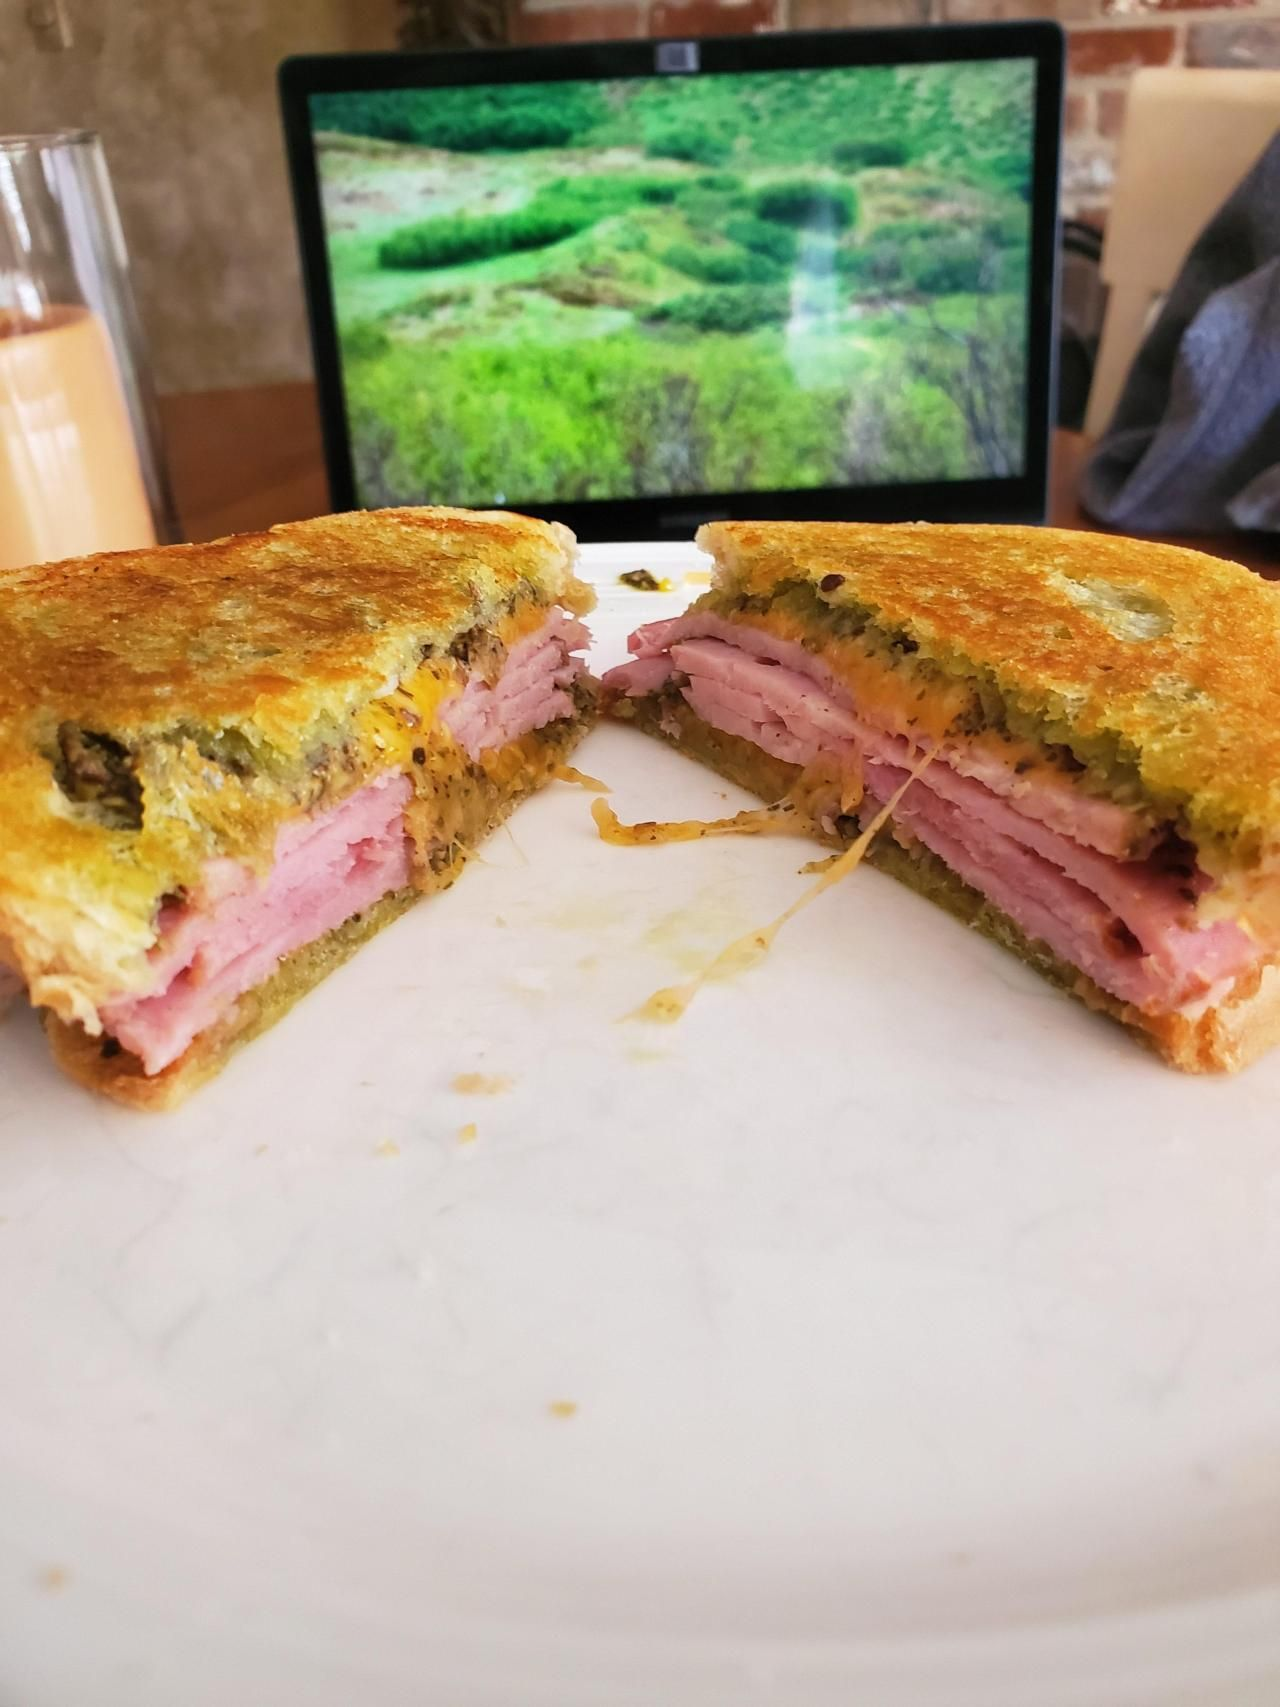 Simple Ham And Cheese With Pesto On Sourdough Food Recipes Reddit Sandwich Summer In 2020 Food Ham And Cheese Asian Food Channel